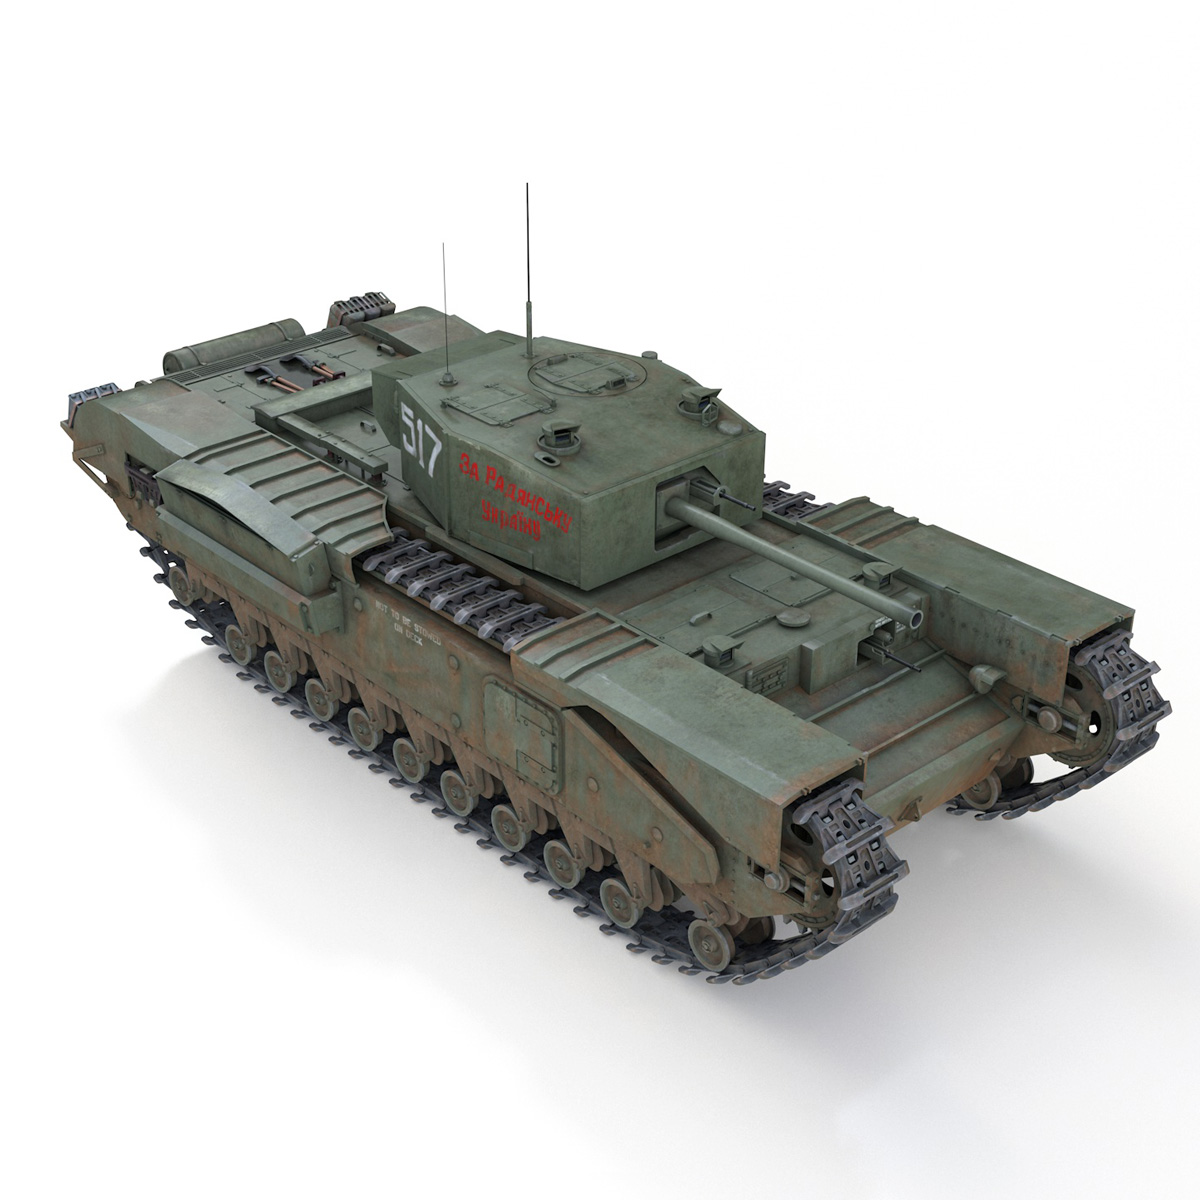 churchill mk iii - 517 - soviet army 3d загвар 3ds fbx c4d lwo obj 272980